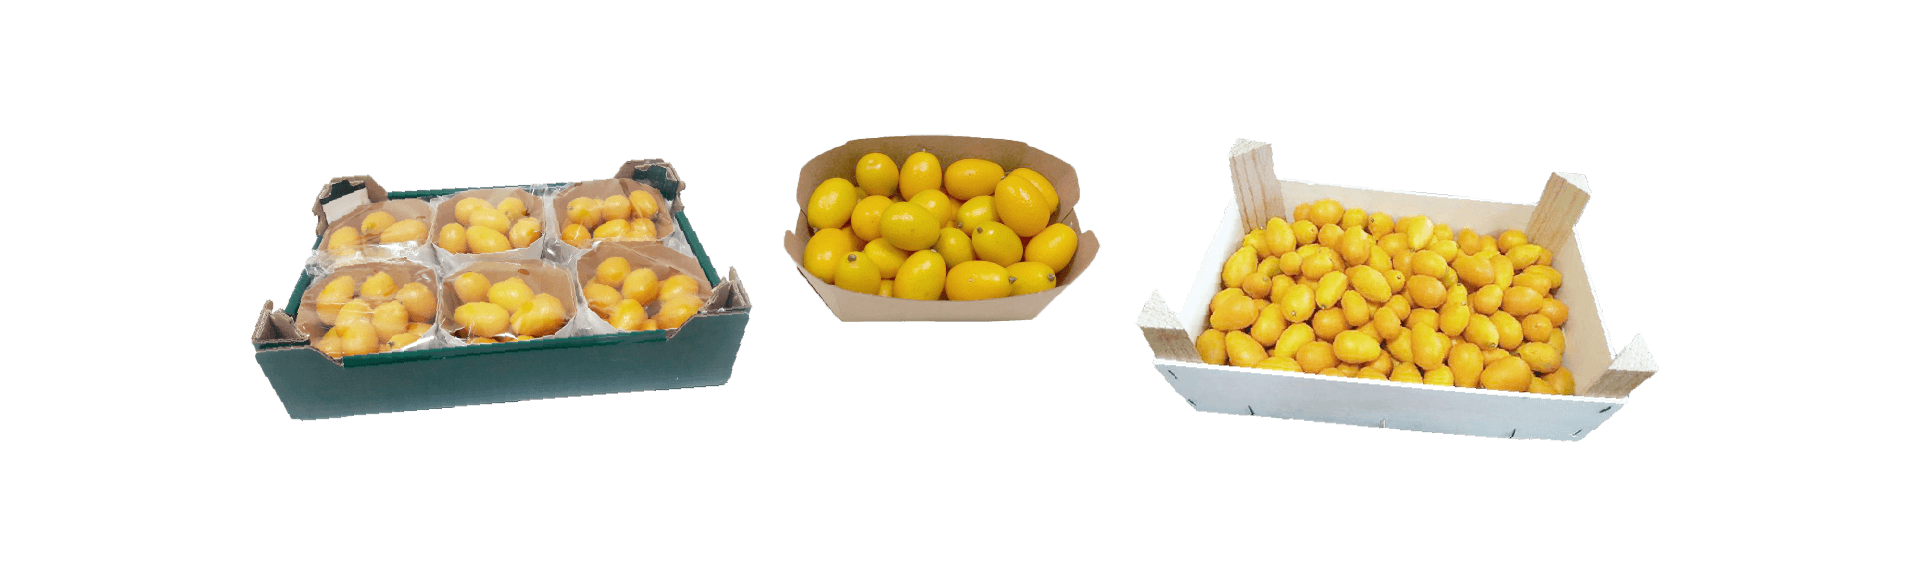 kumquat-packaging-34